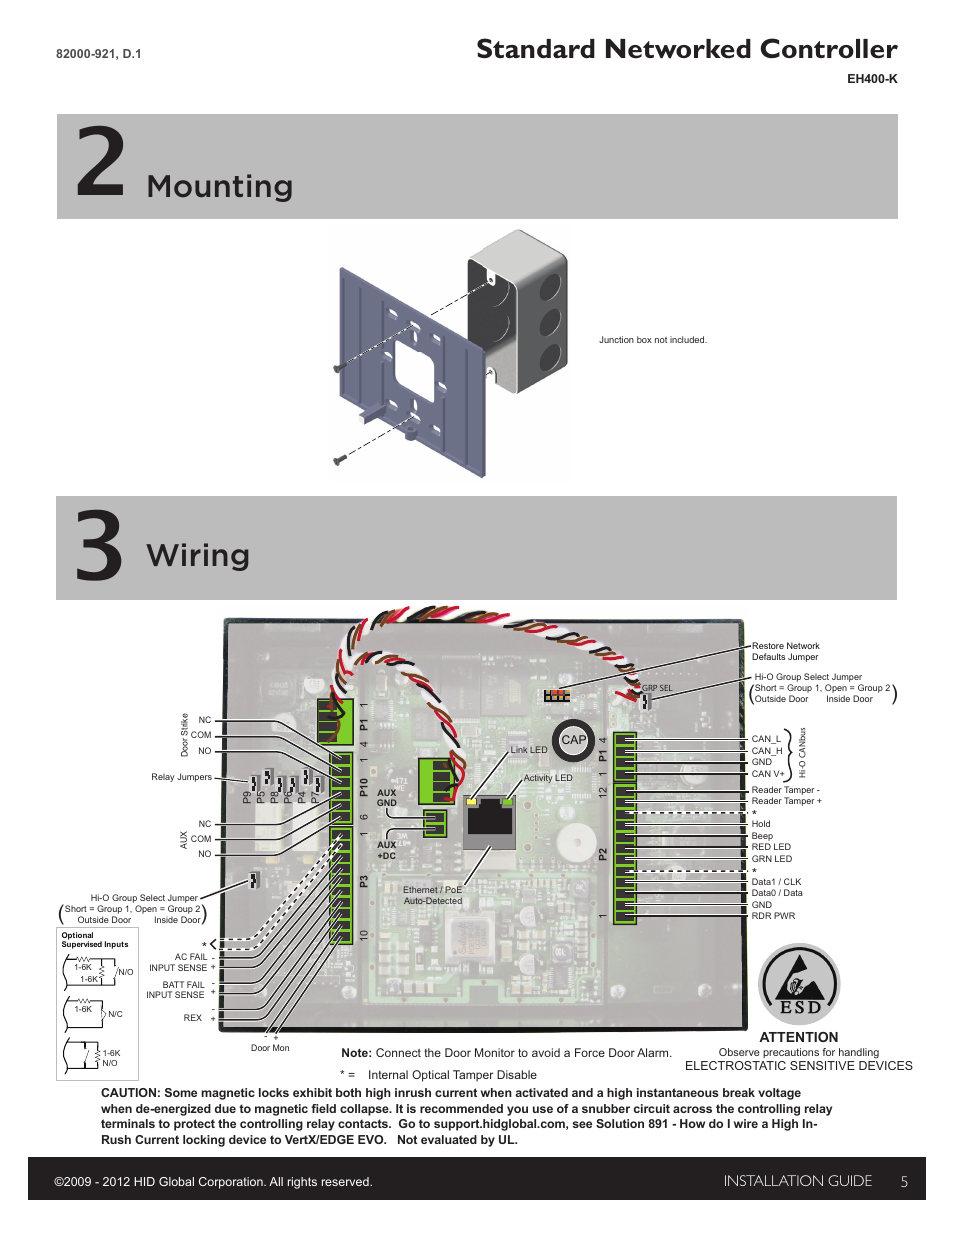 hid edge evo wiring diagram   27 wiring diagram images